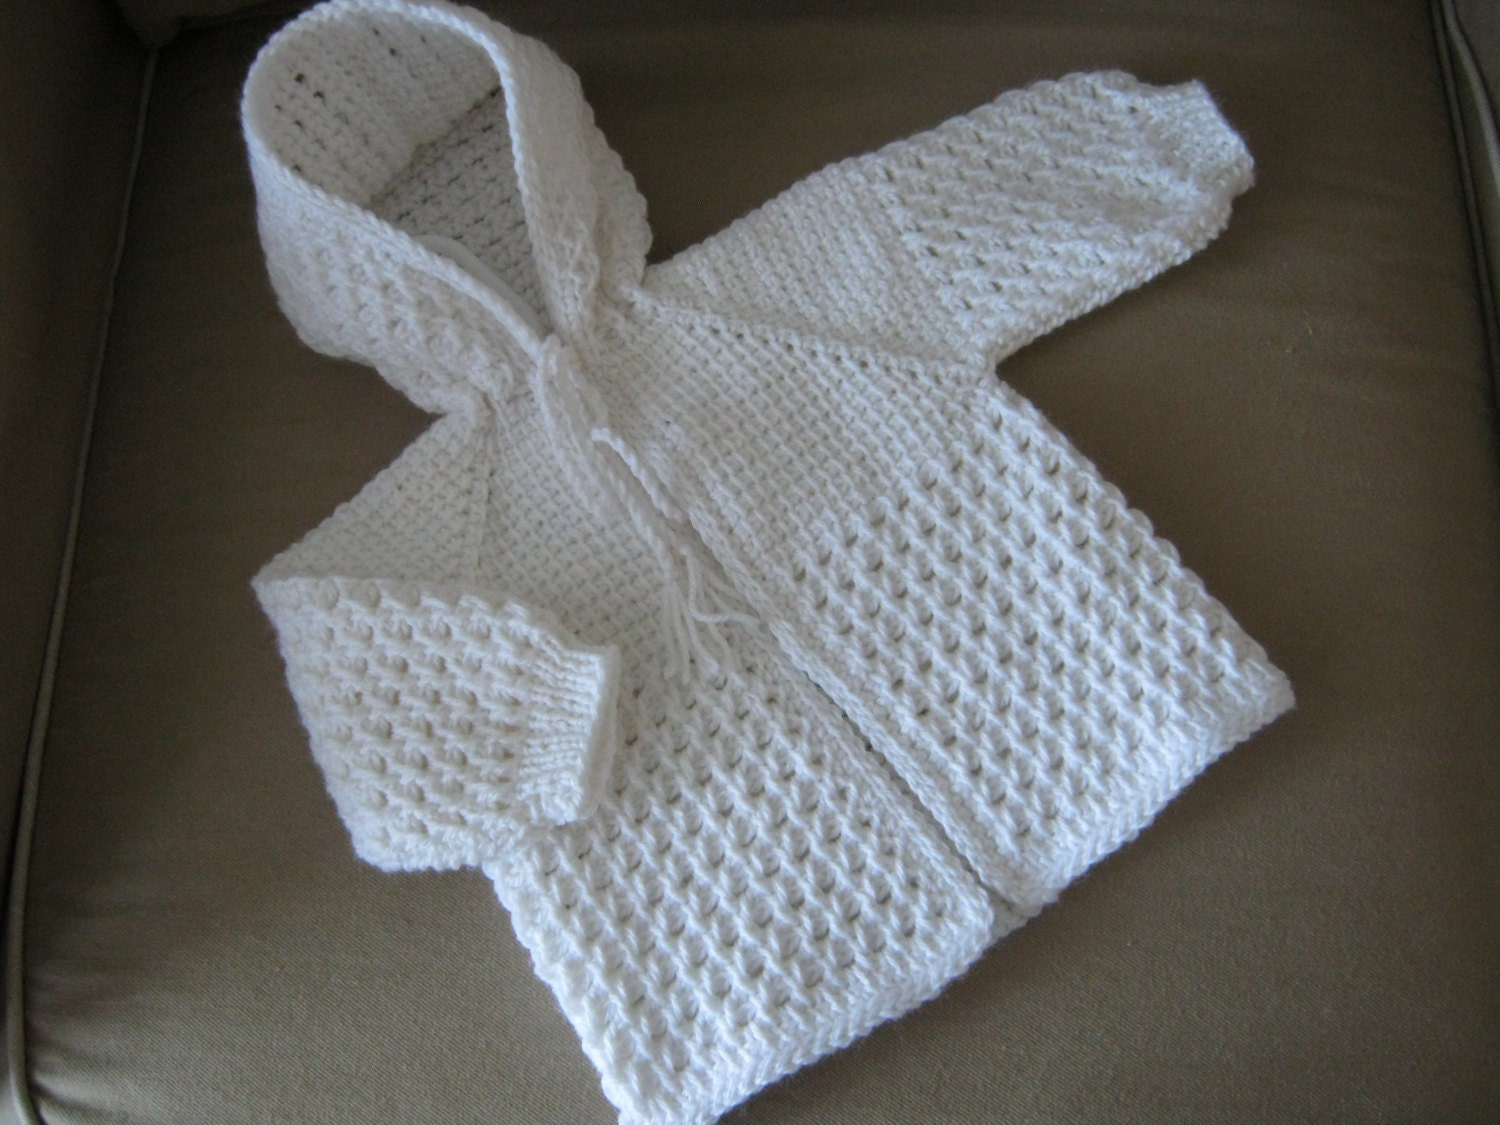 White Crochet Baby Sweater With Hood For Boy Or Girl 0 3